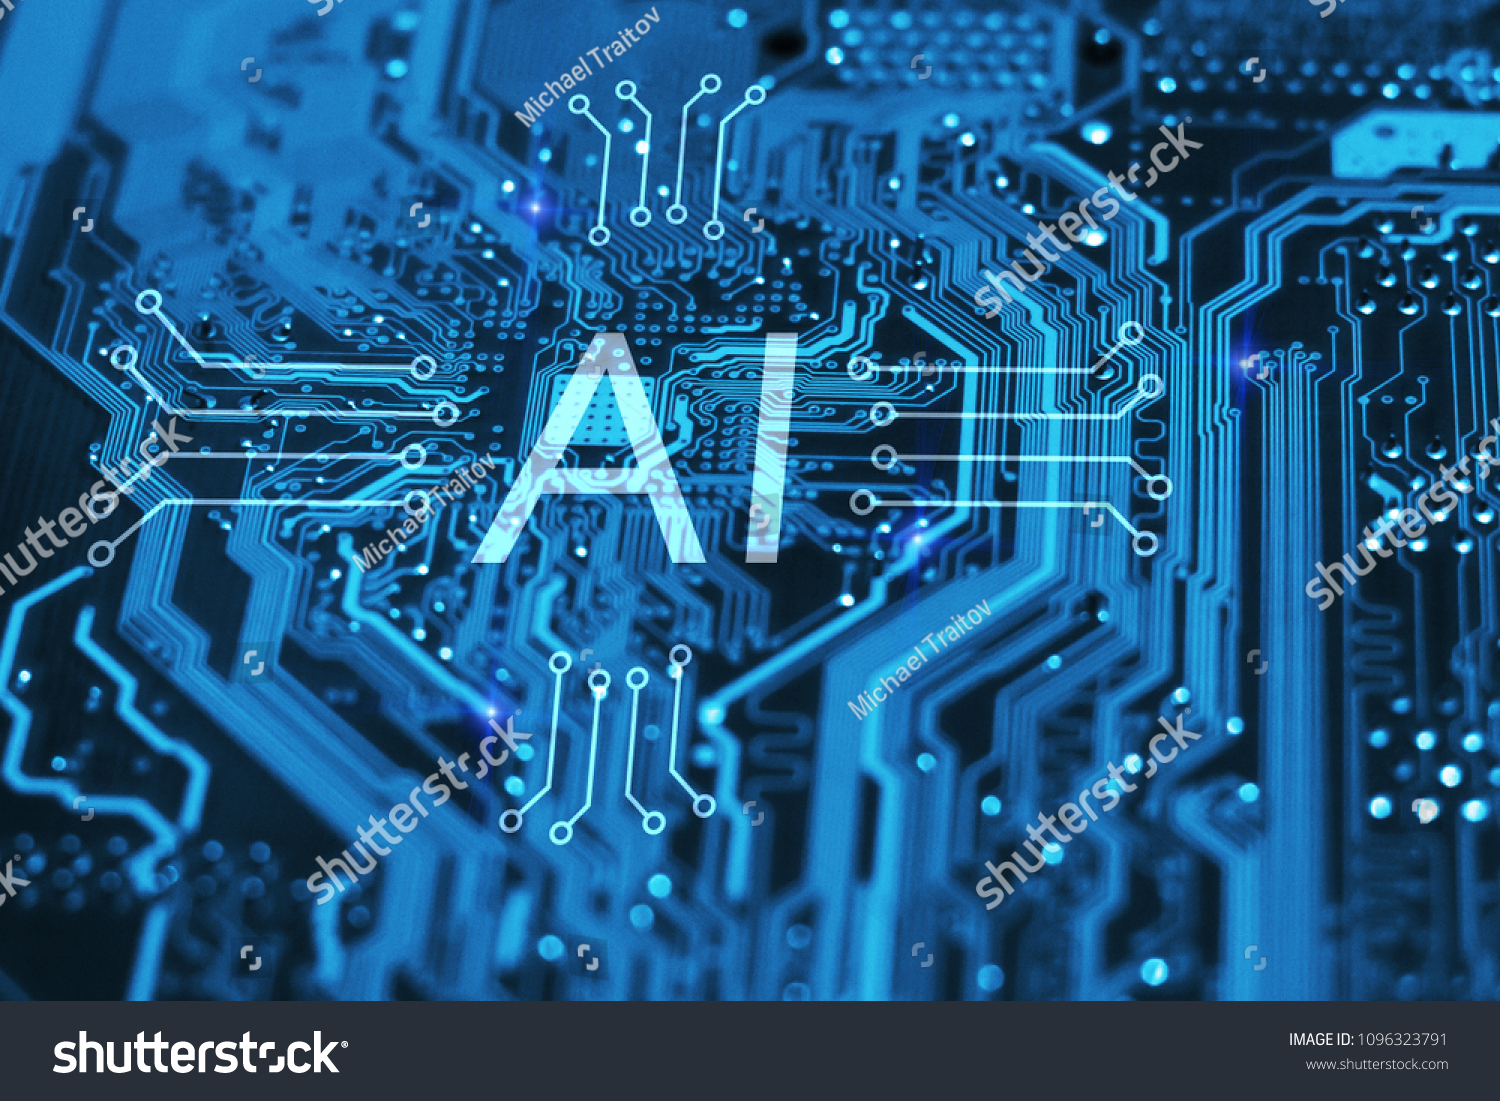 Artificial Intelligence Machine Learning Concept Ai Stock Photo Integrated Circuits And Symbol On Circuit Blue Background